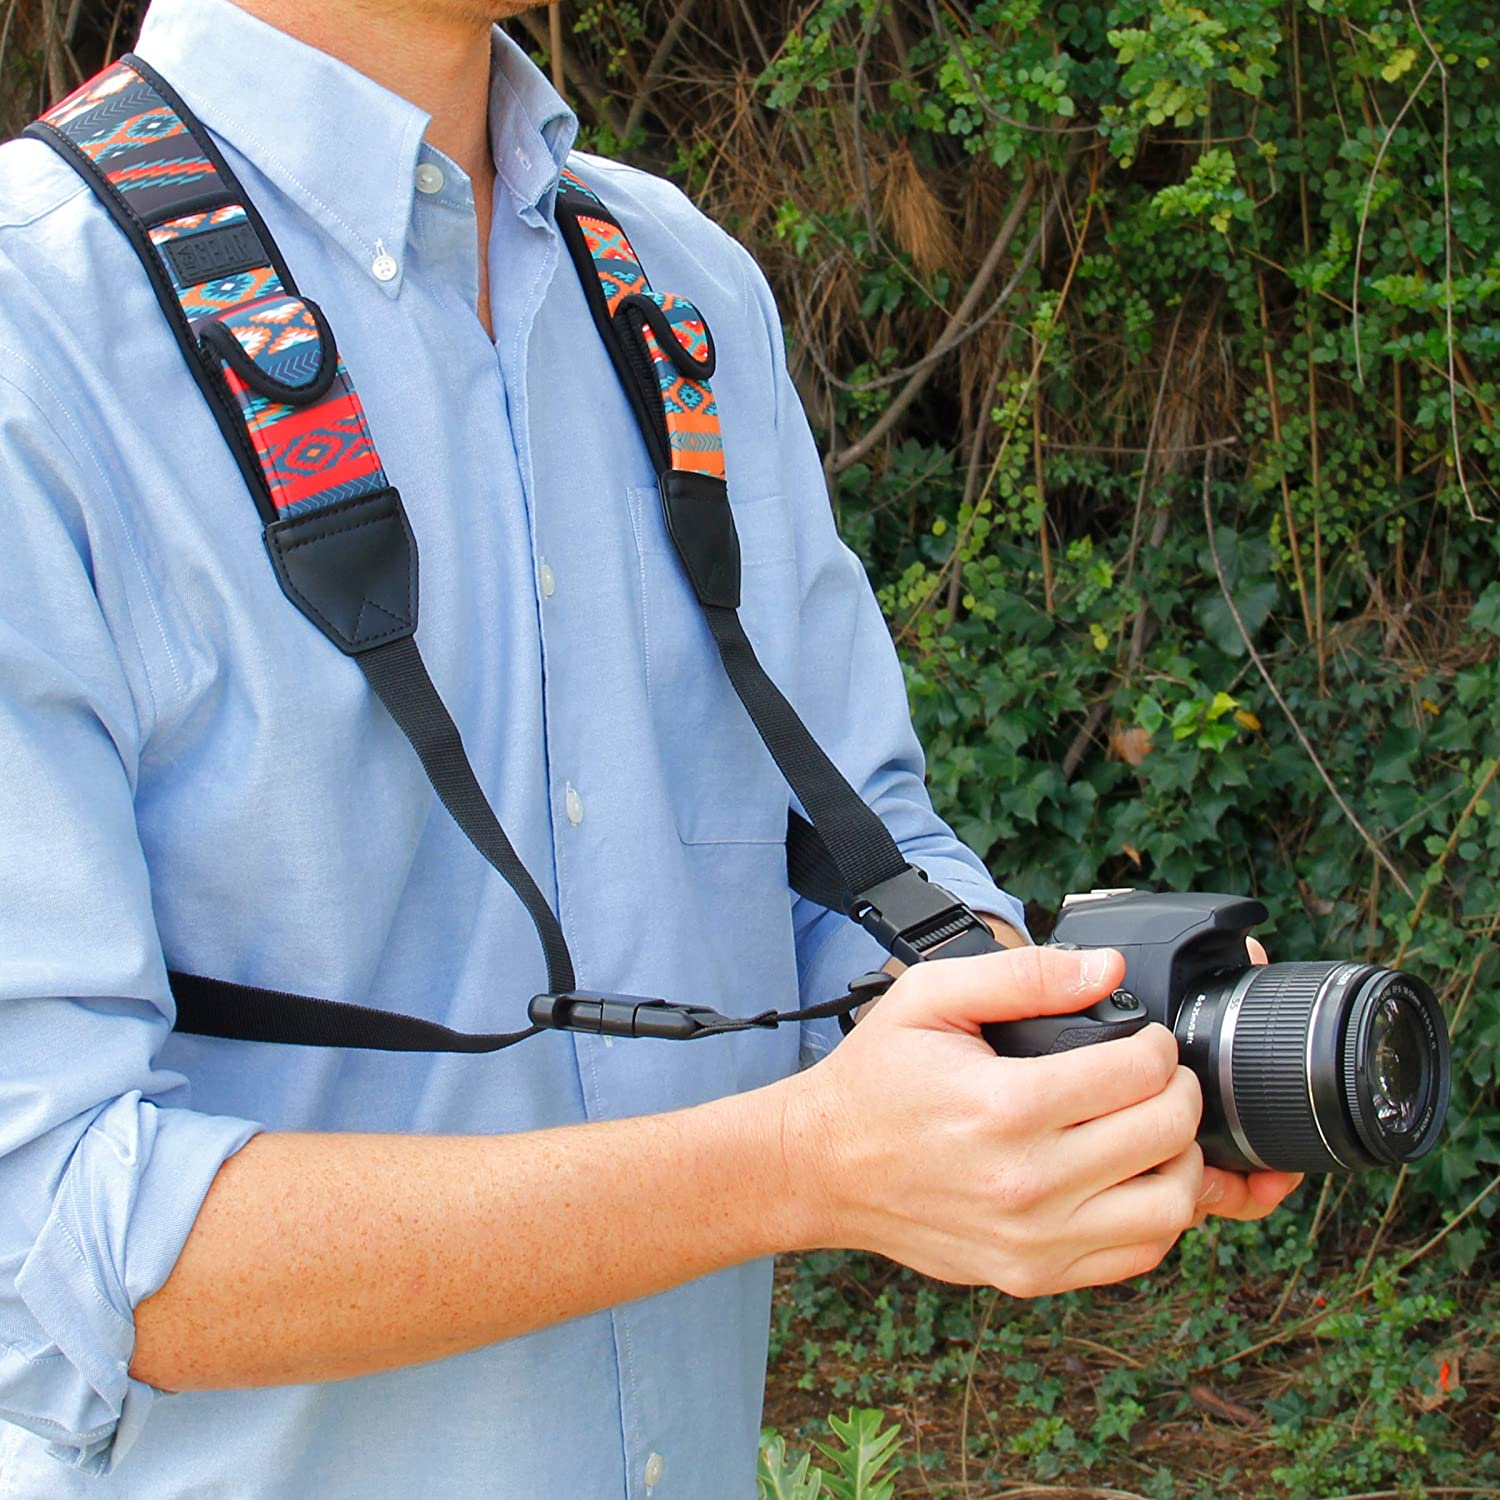 Floral Neoprene Pattern and Accessory Pockets Sony and More Point and Shoot USA Gear DSLR Camera Strap Chest Harness with Quick Release Buckles Compatible with Canon Nikon Mirrorless Cameras